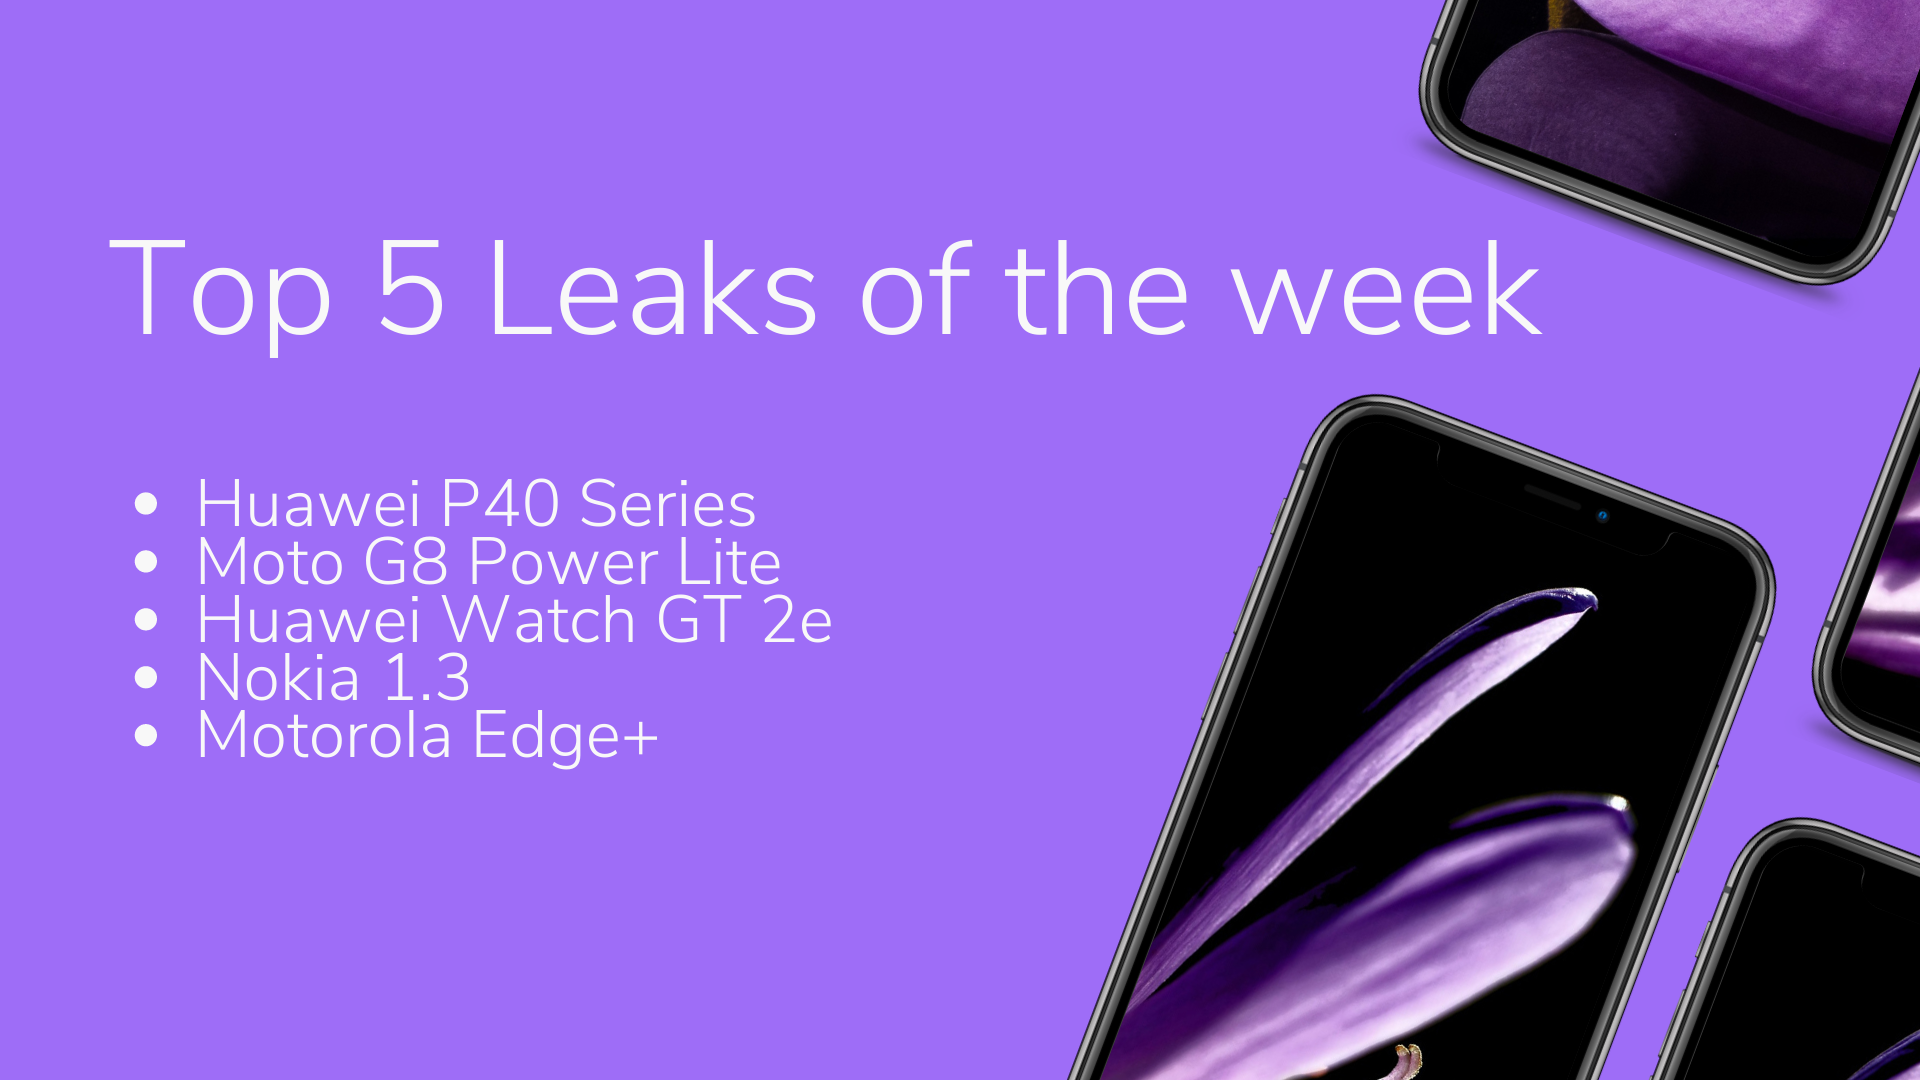 Photo of Top 5 Leaks of the week- P40 Series, Moto G8 Power Lite, Watch GT 2e, Nokia 1.3, and Motorola Edge+